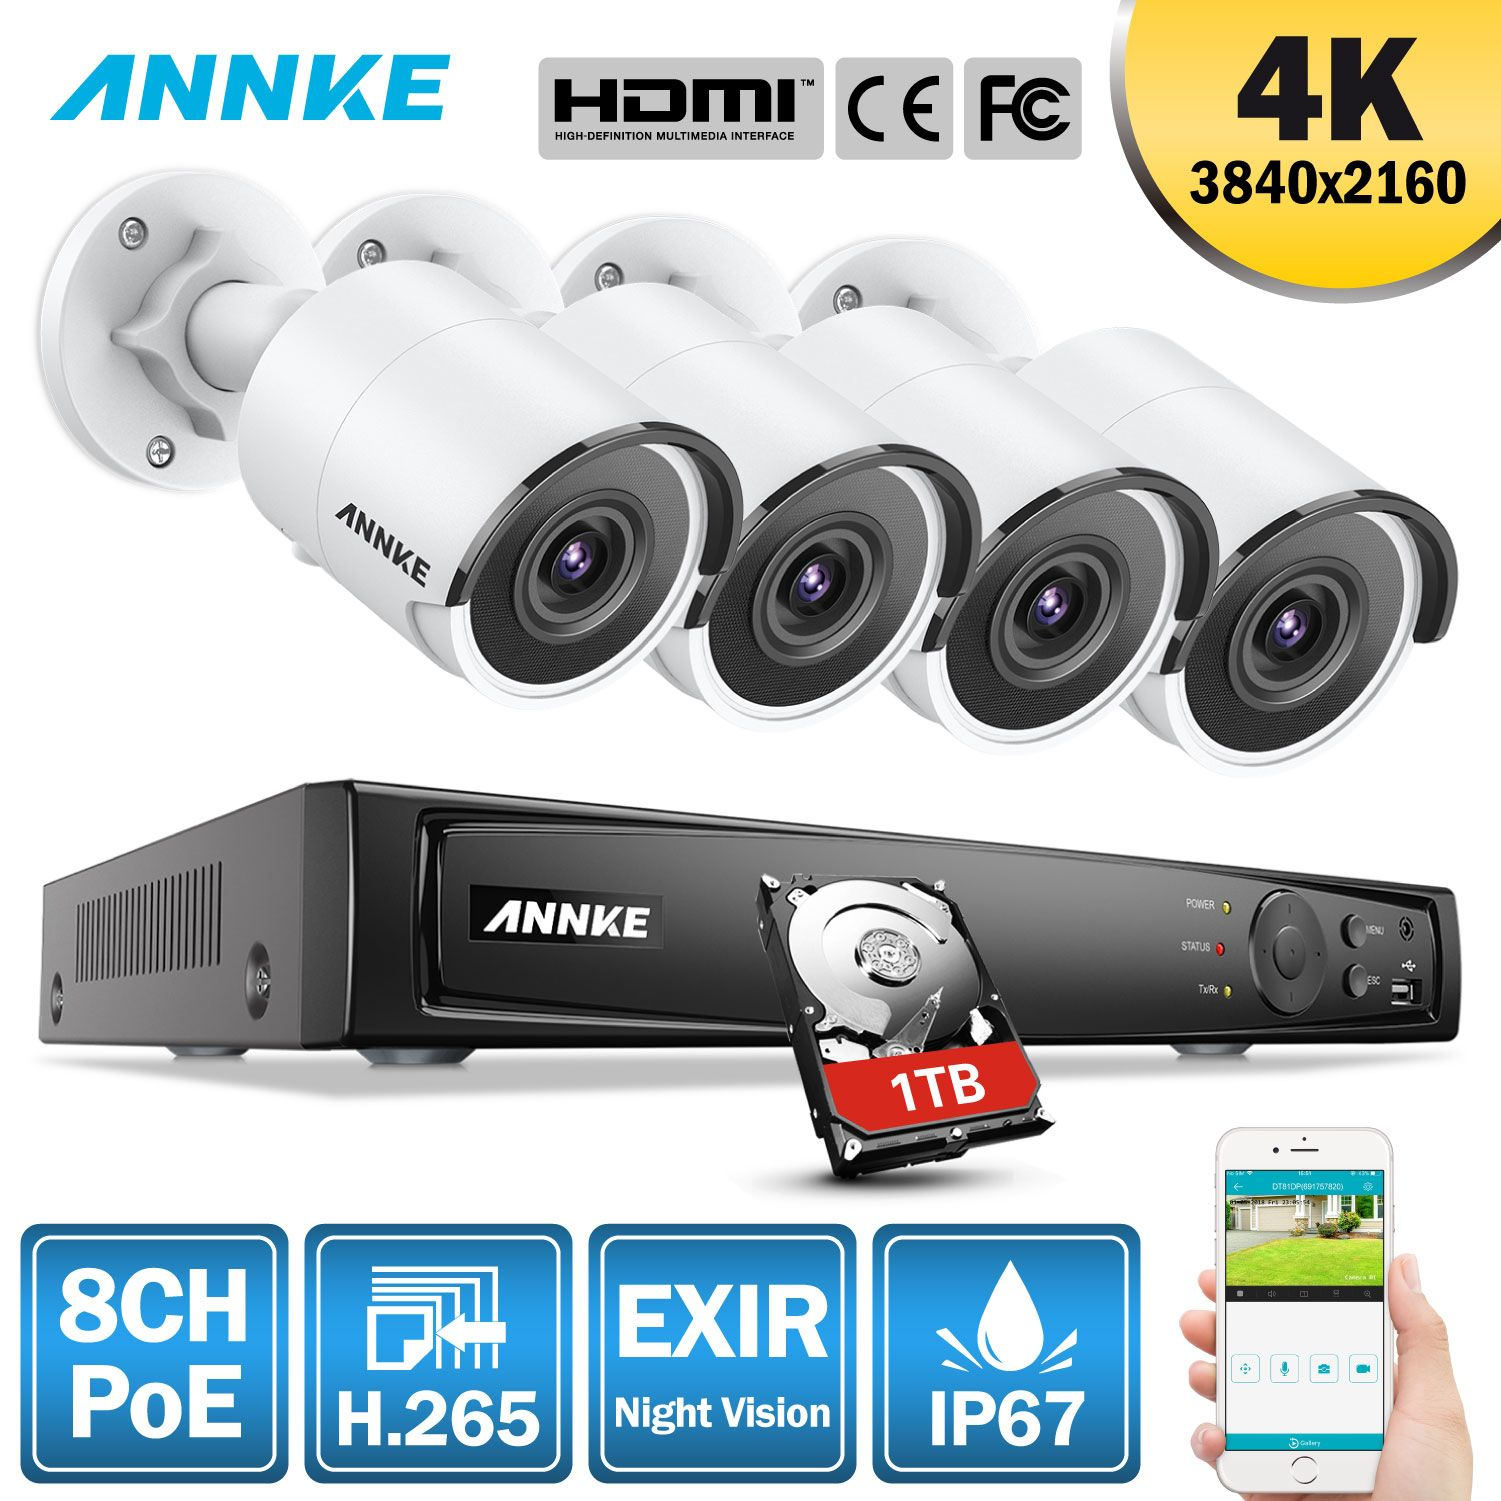 ANNKE 8CH 4 K Ultra HD POE Netzwerk Video Security System 8MP H.265 NVR Mit 4 PCS 8MP Wetterfeste IP kamera Mit 1 TB/2 TB/4 TB HDD